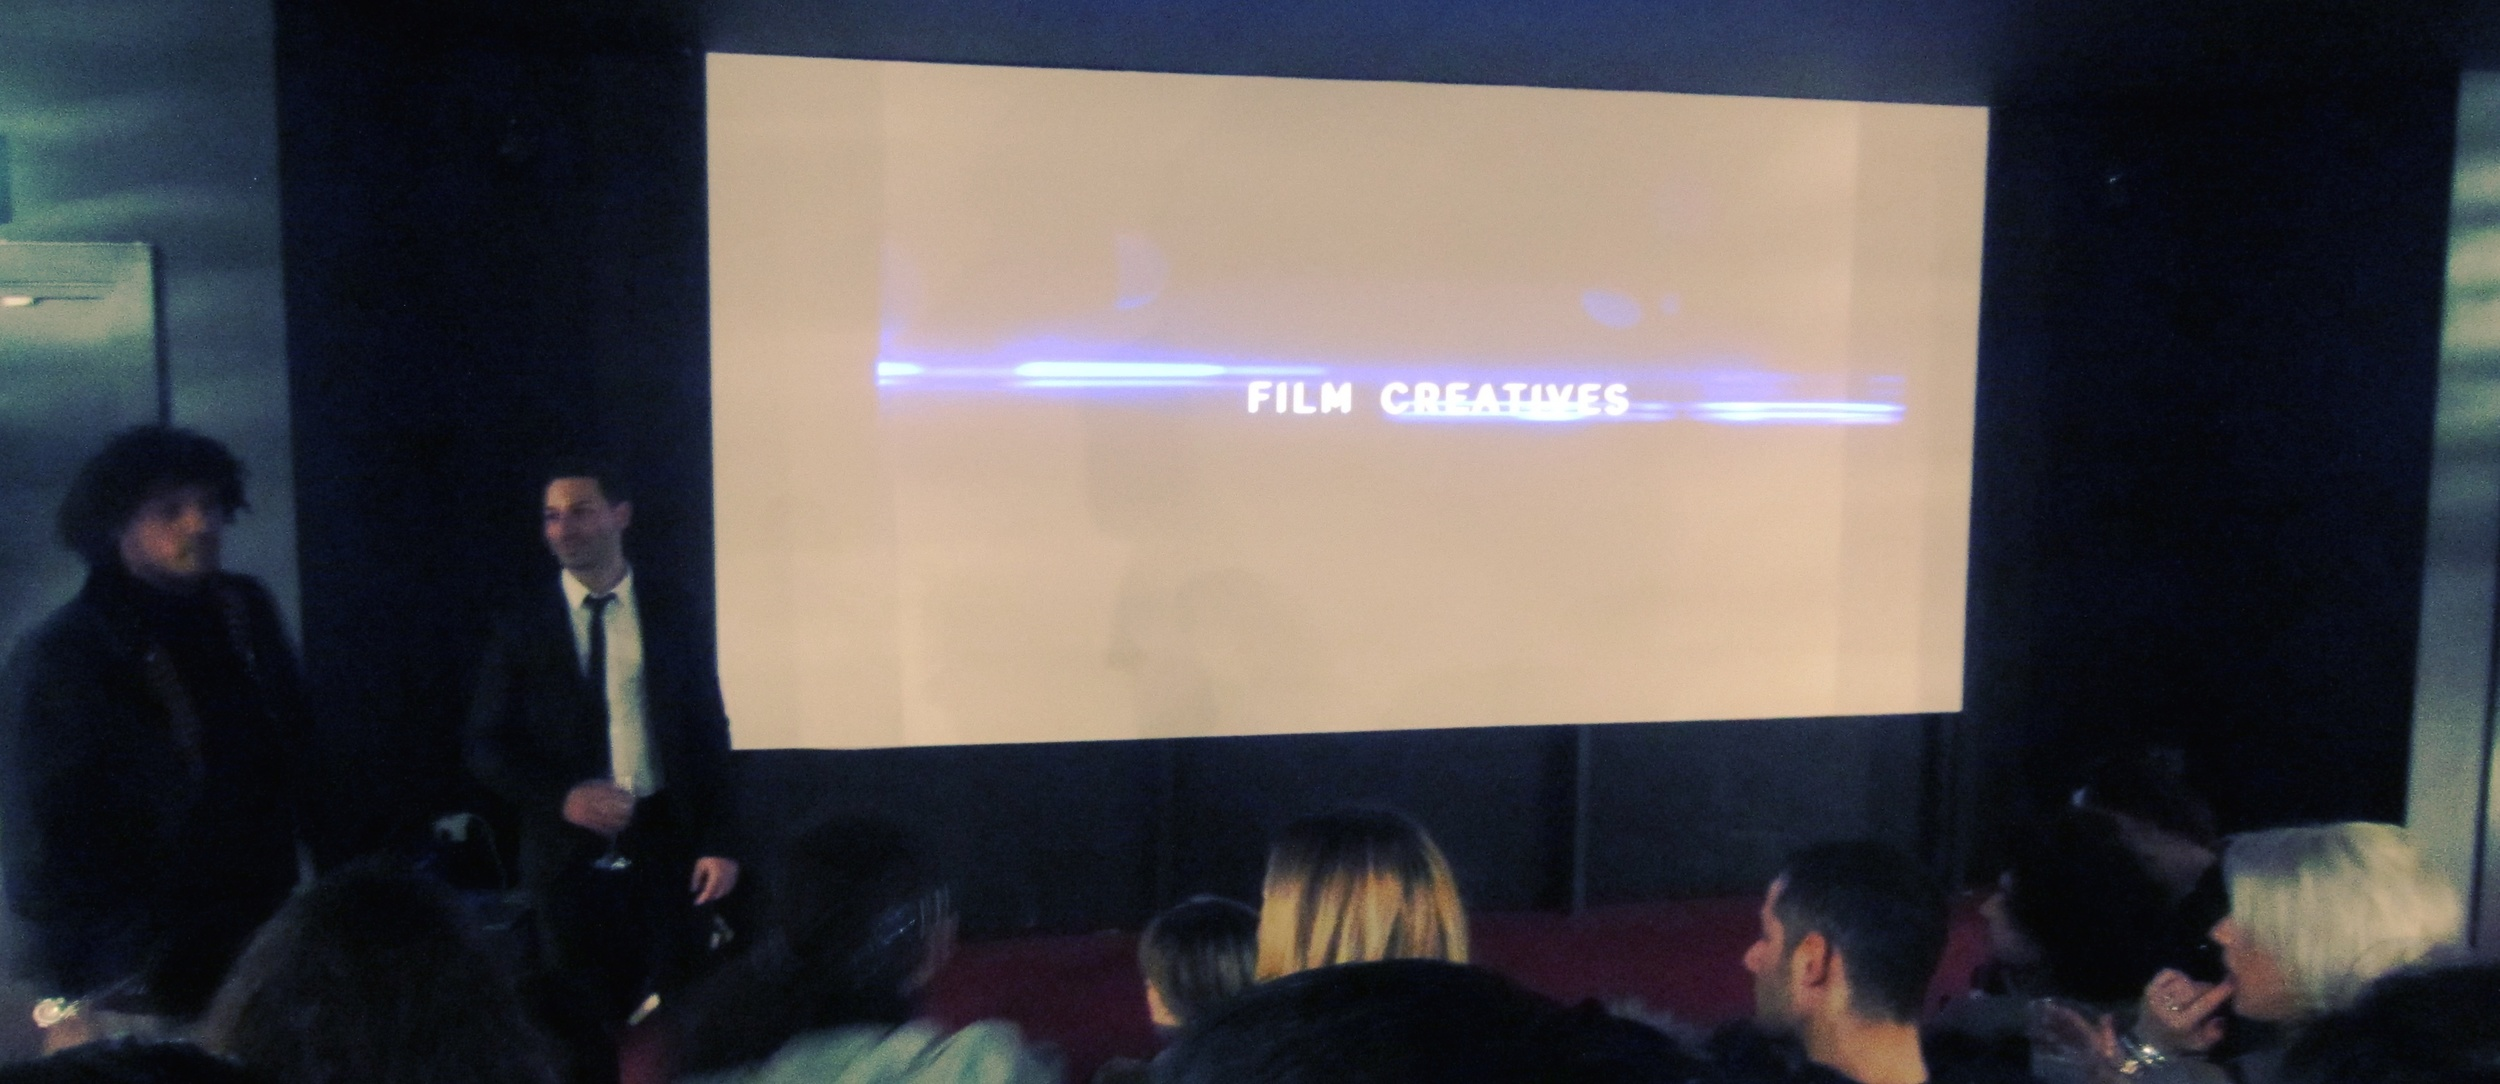 Film Creatives Screening 2013